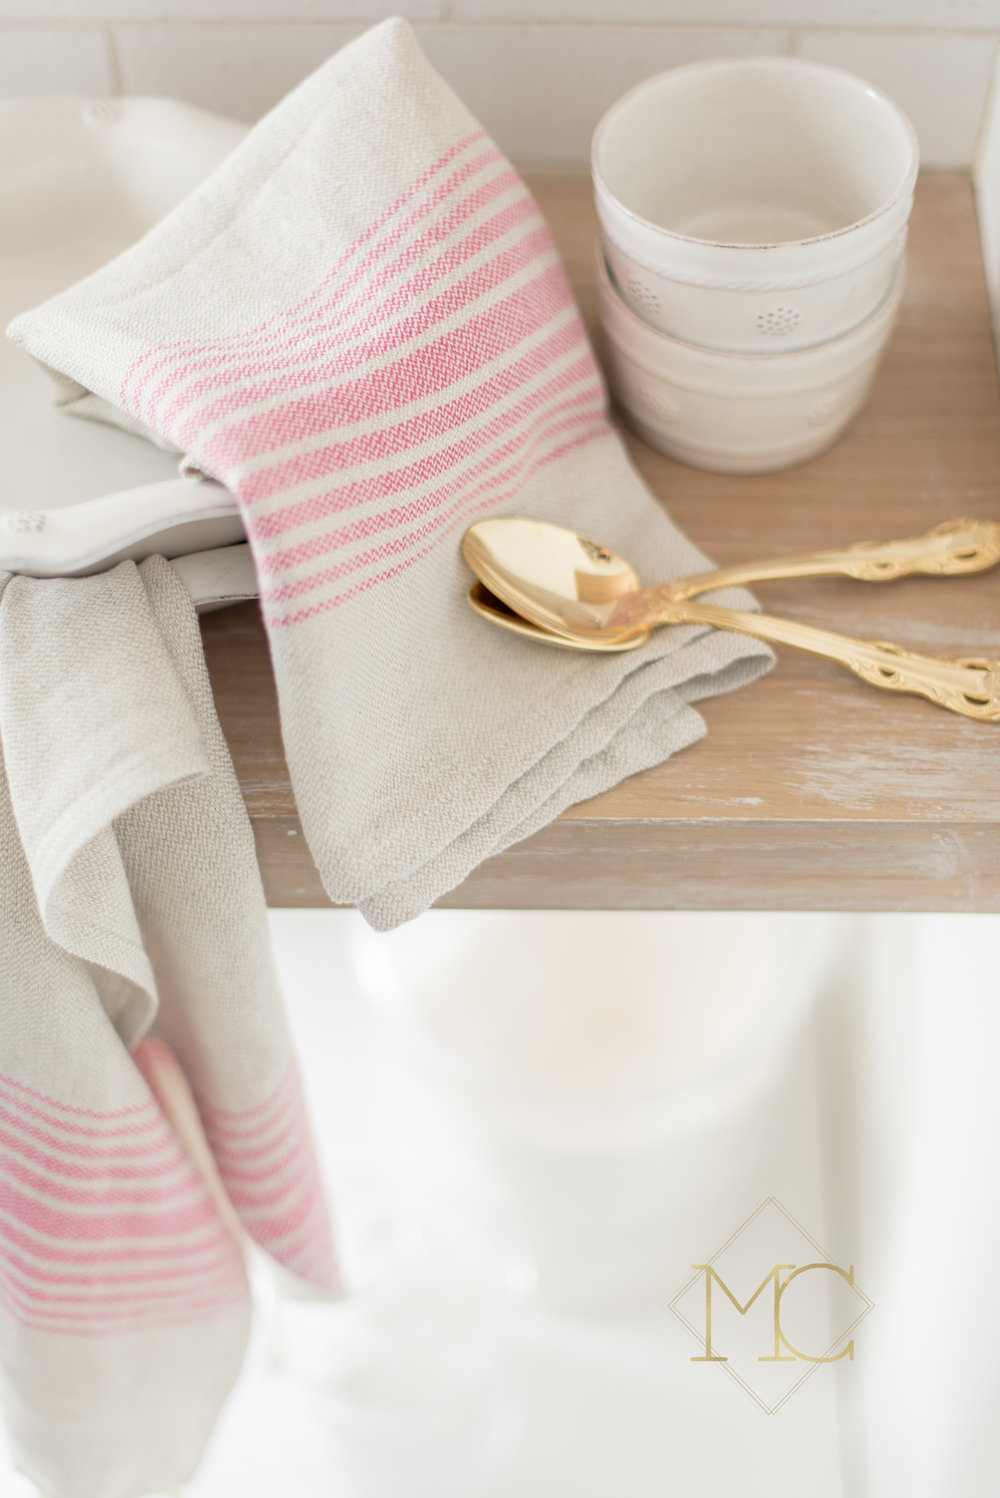 image from commercial product nashville shoot of turkish kitchen interior towel